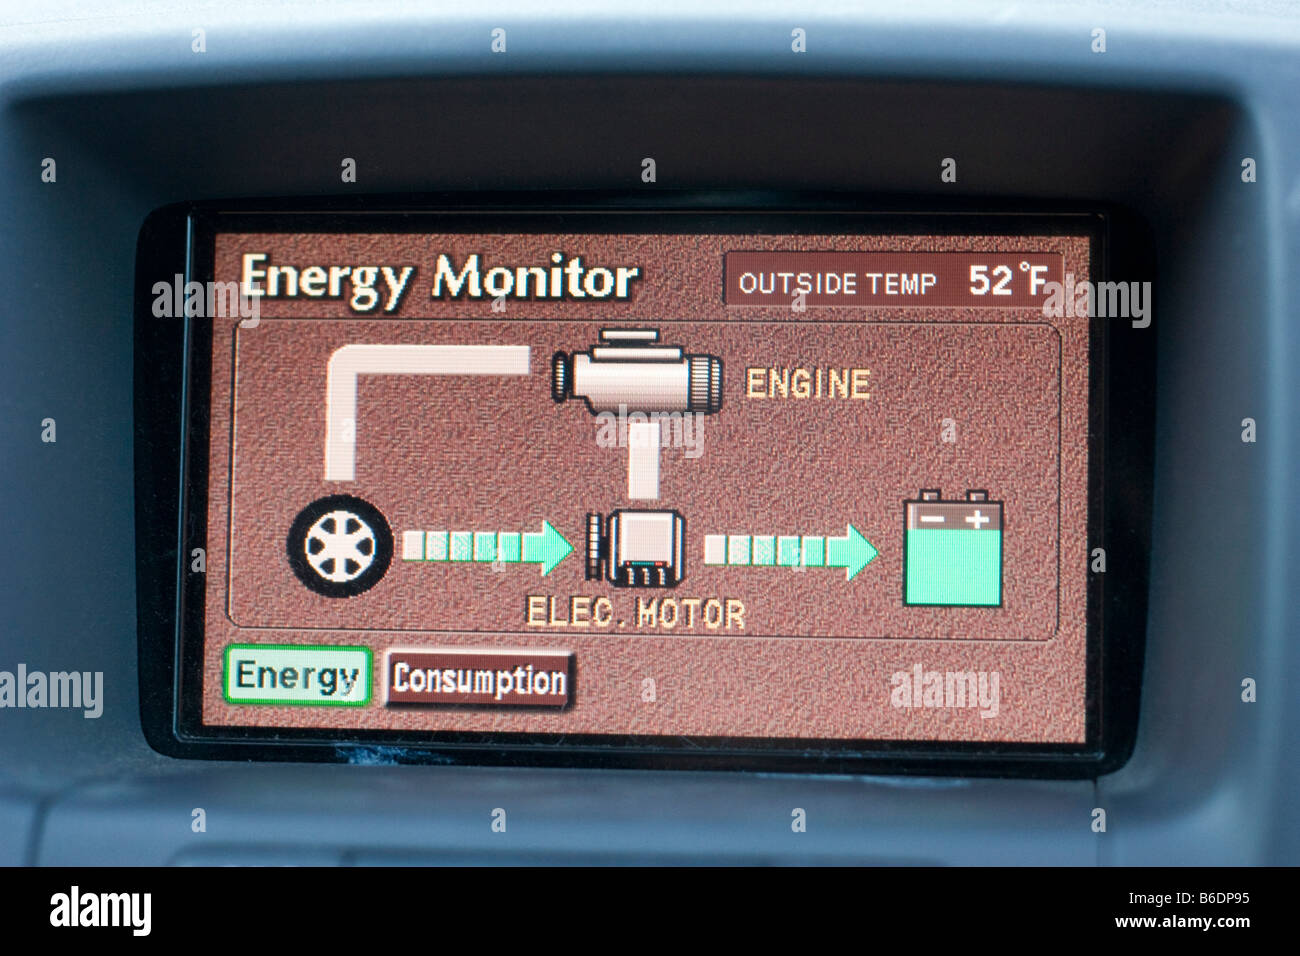 The Energy Monitor of a Toyota Prius October 4 2008 - Stock Image